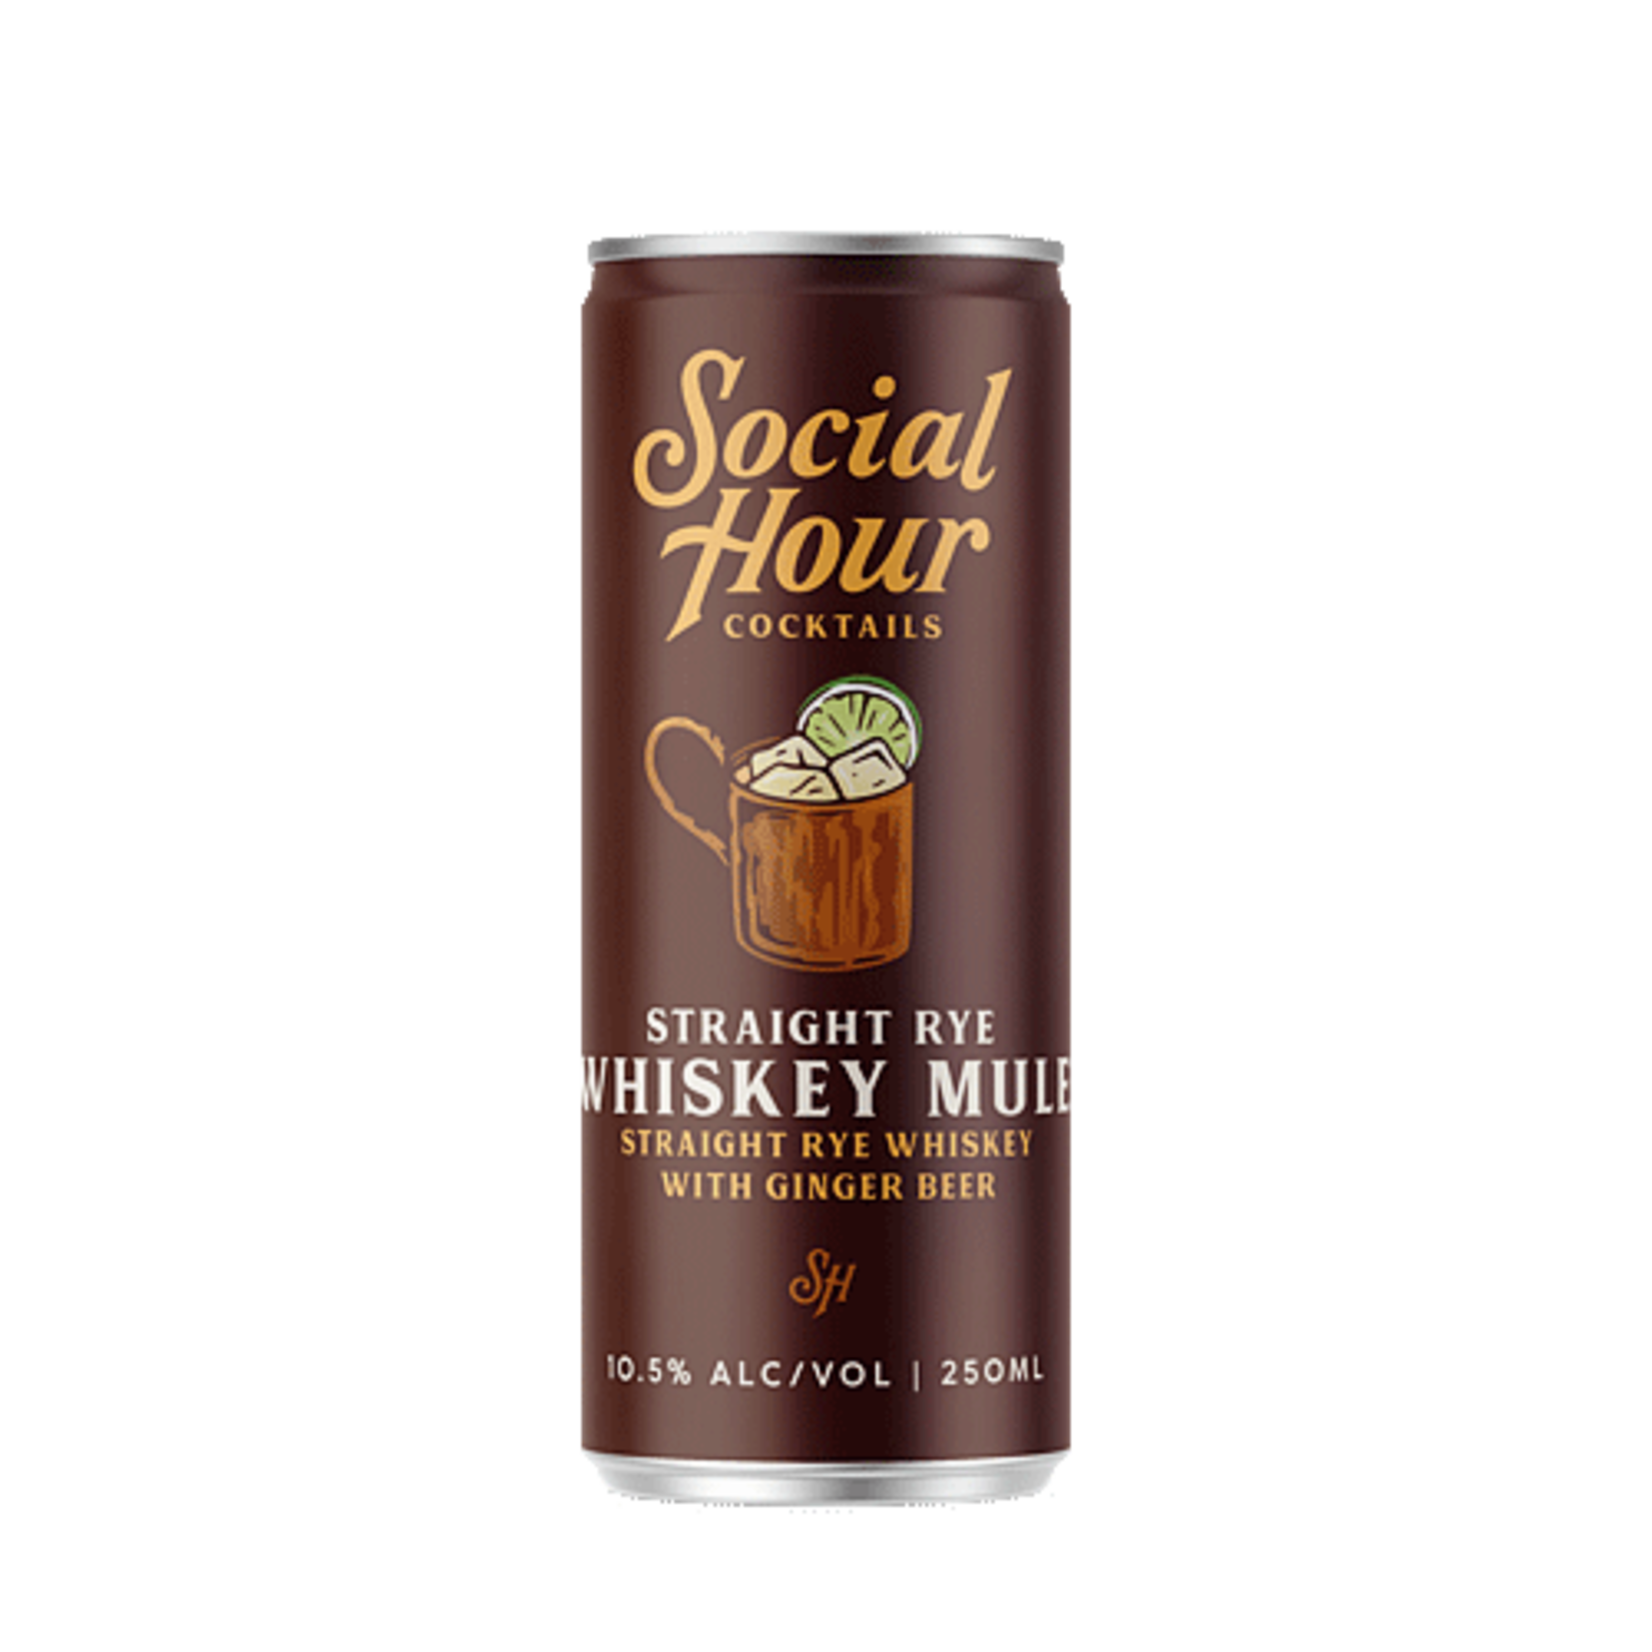 Spirits Social Hour Cocktails Brooklyn Craft Whiskey Mule Can 250ml